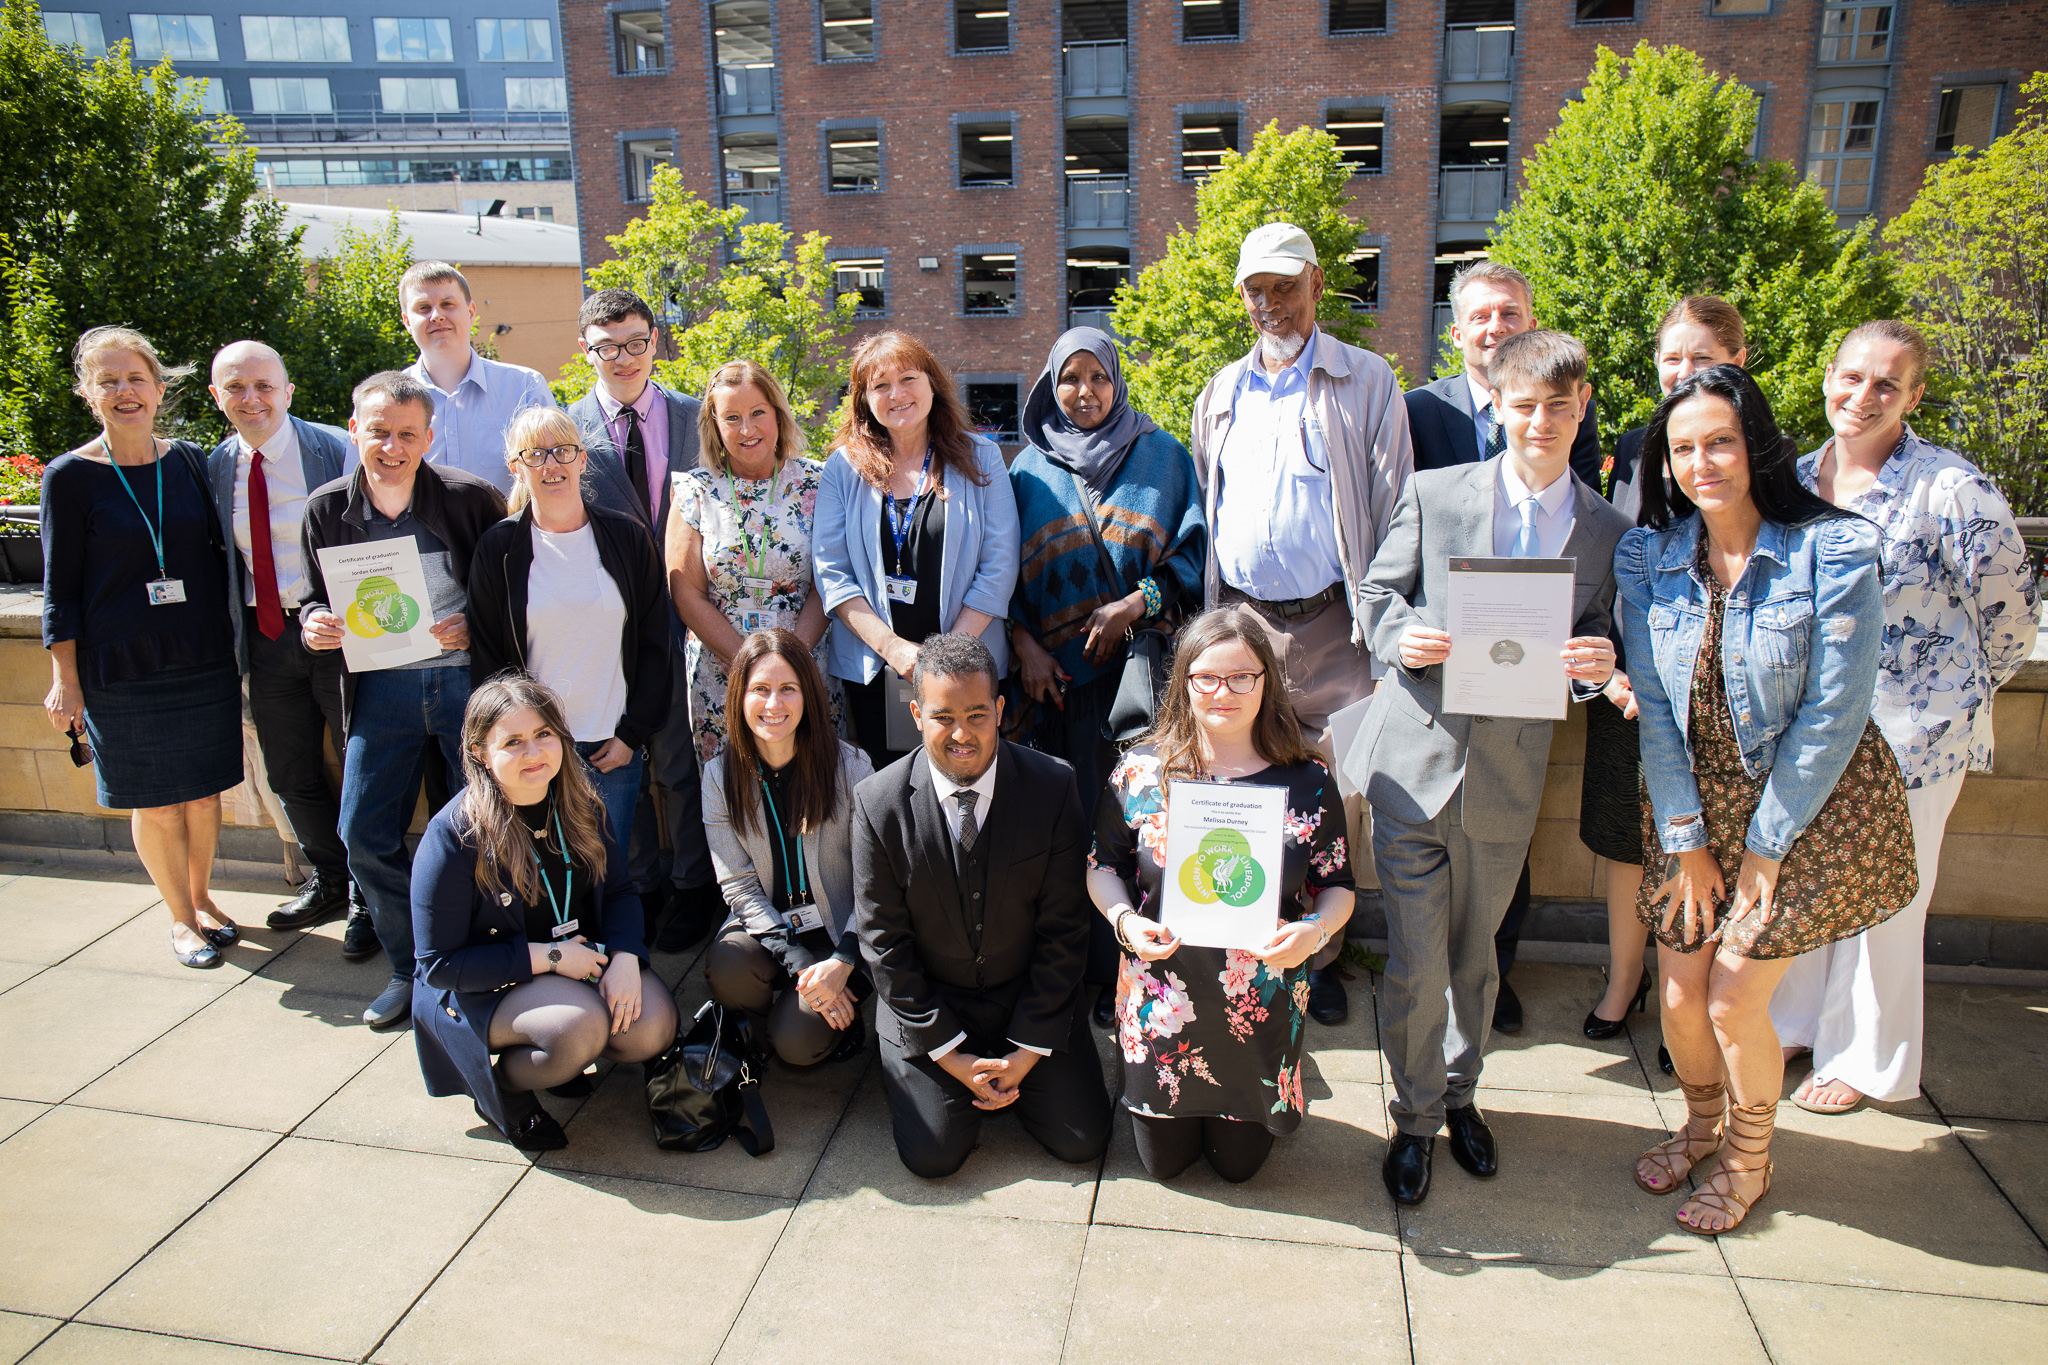 Group shot of supported interns, their families, staff from host employers and education providers.